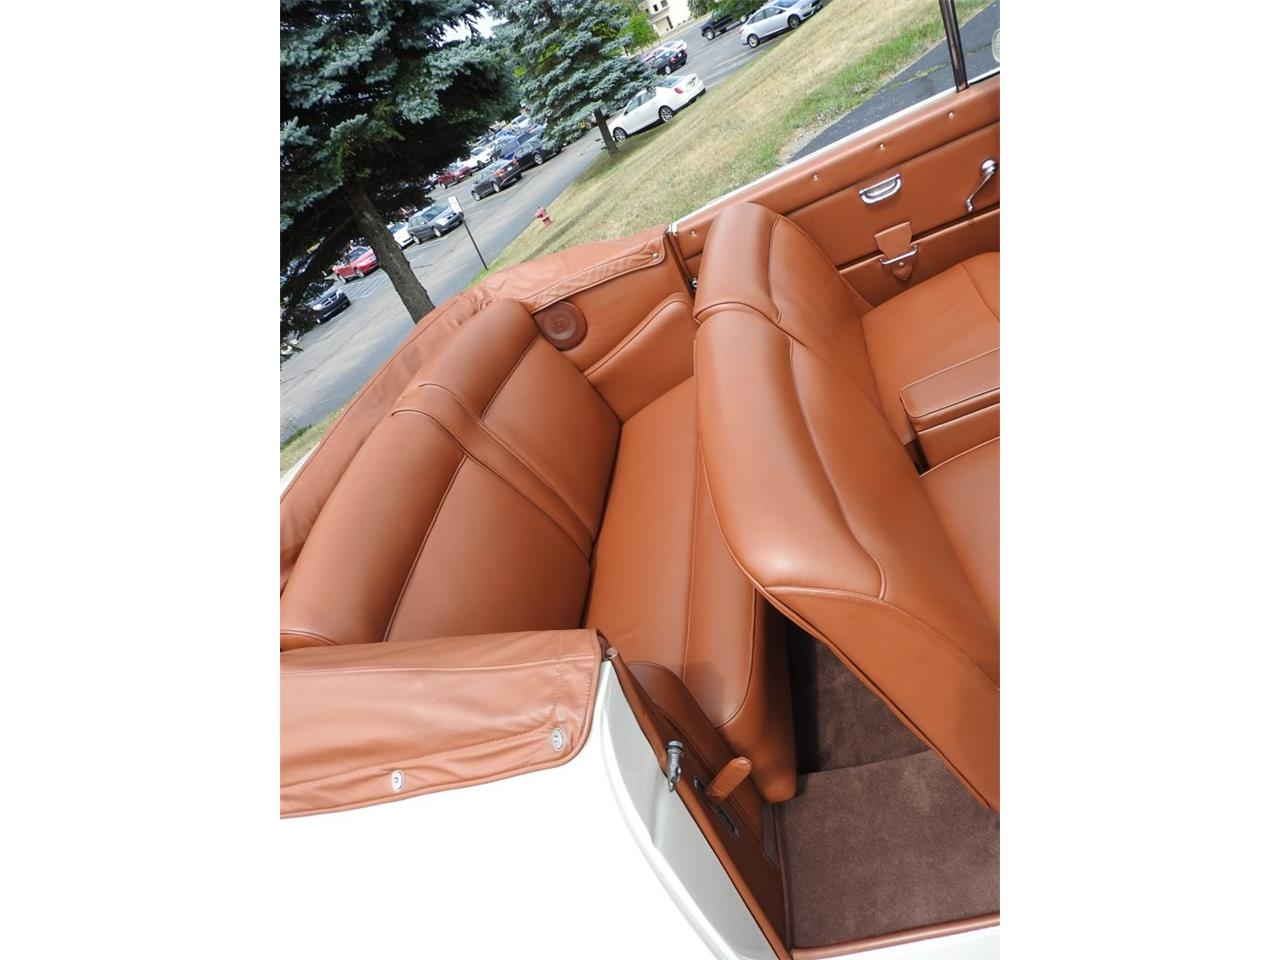 Large Picture of Classic 1950 Talbot-Lago Roadster located in Michigan - OCHL